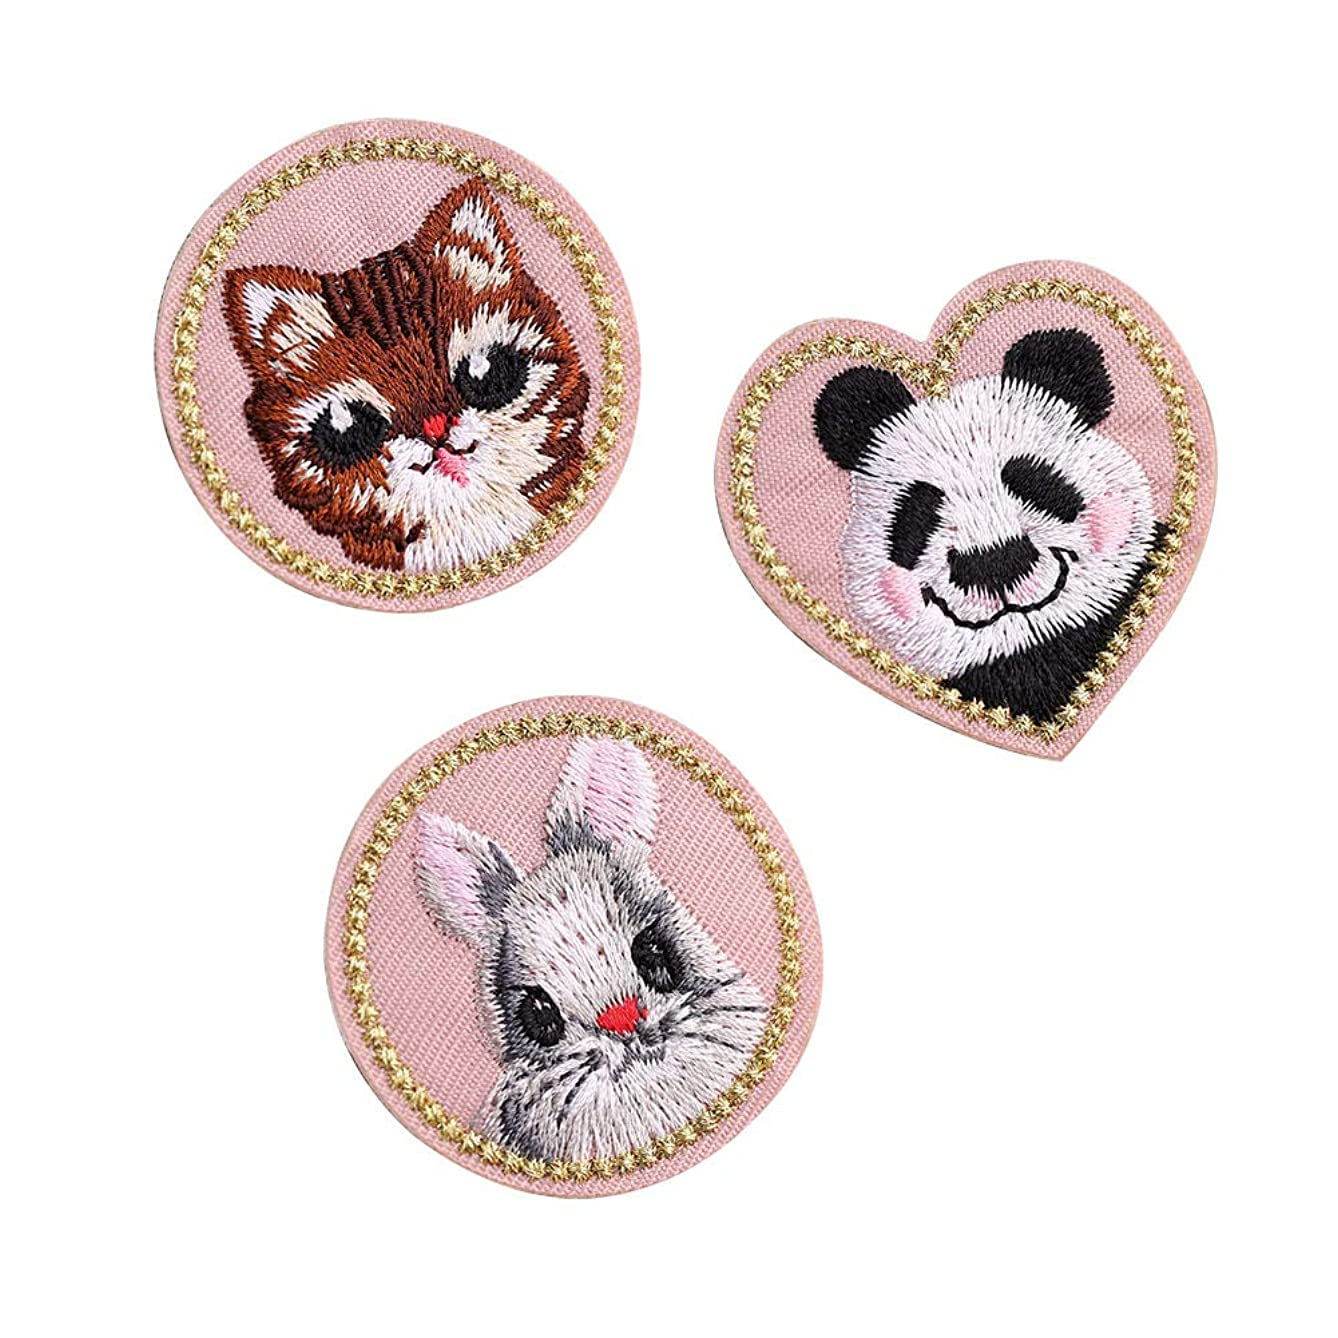 SOUTHYU 3Pcs Iron On Patches for Clothing Repair, Cute Rabbit Cat Panda Patch Embroidered Applique Sew On Emblem for Jackets, Jeans, Costume, Backpacks, Hat, T-Shirts